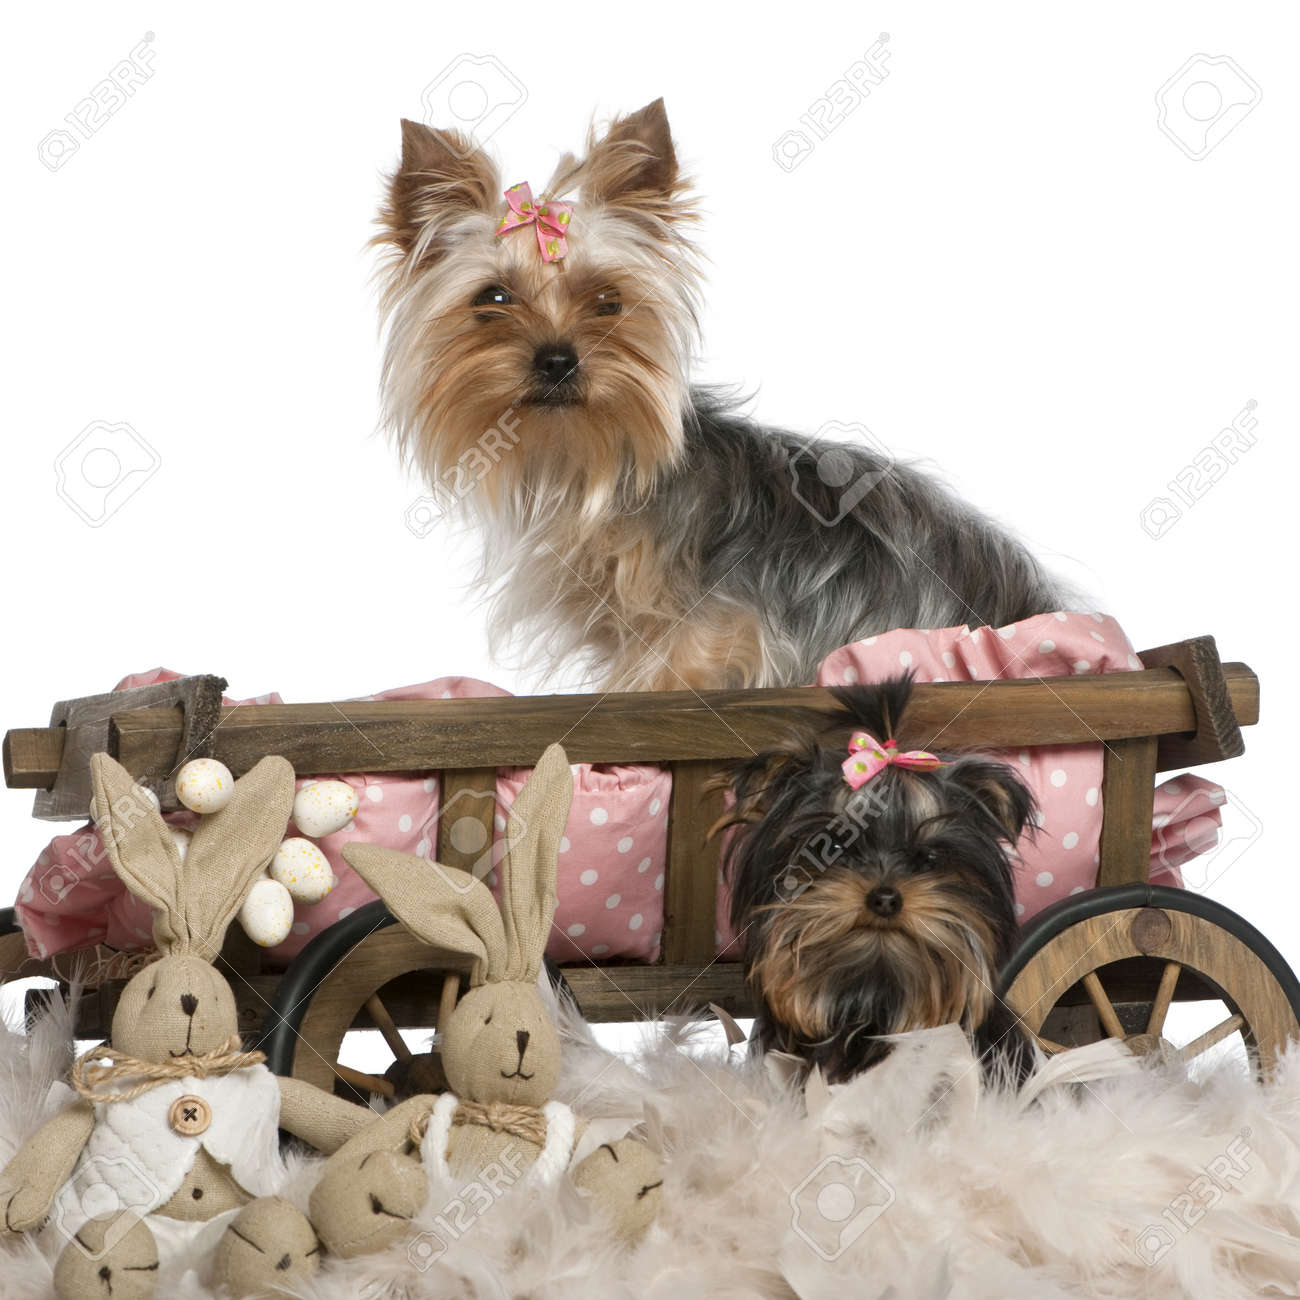 Two Yorkshire Terriers 5 And 9 Months Old With Dog Bed Wagon